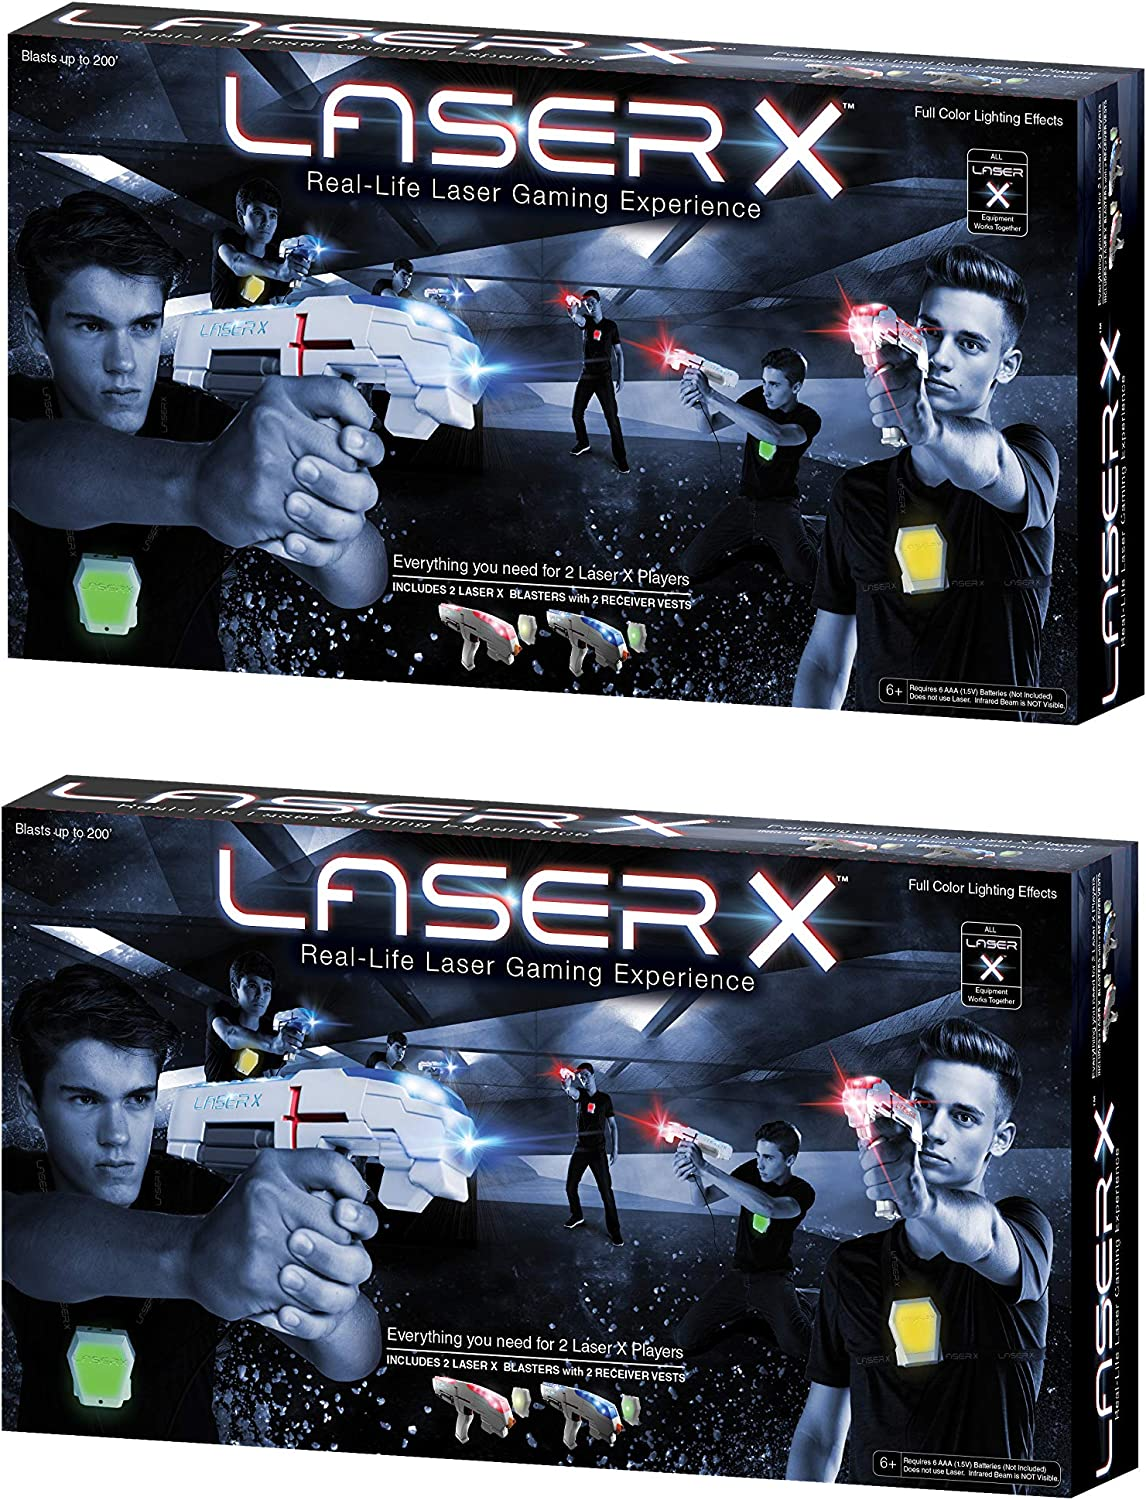 Laser X 88016 Two Player Laser Gaming Set (Various Quantities) (4 Player)